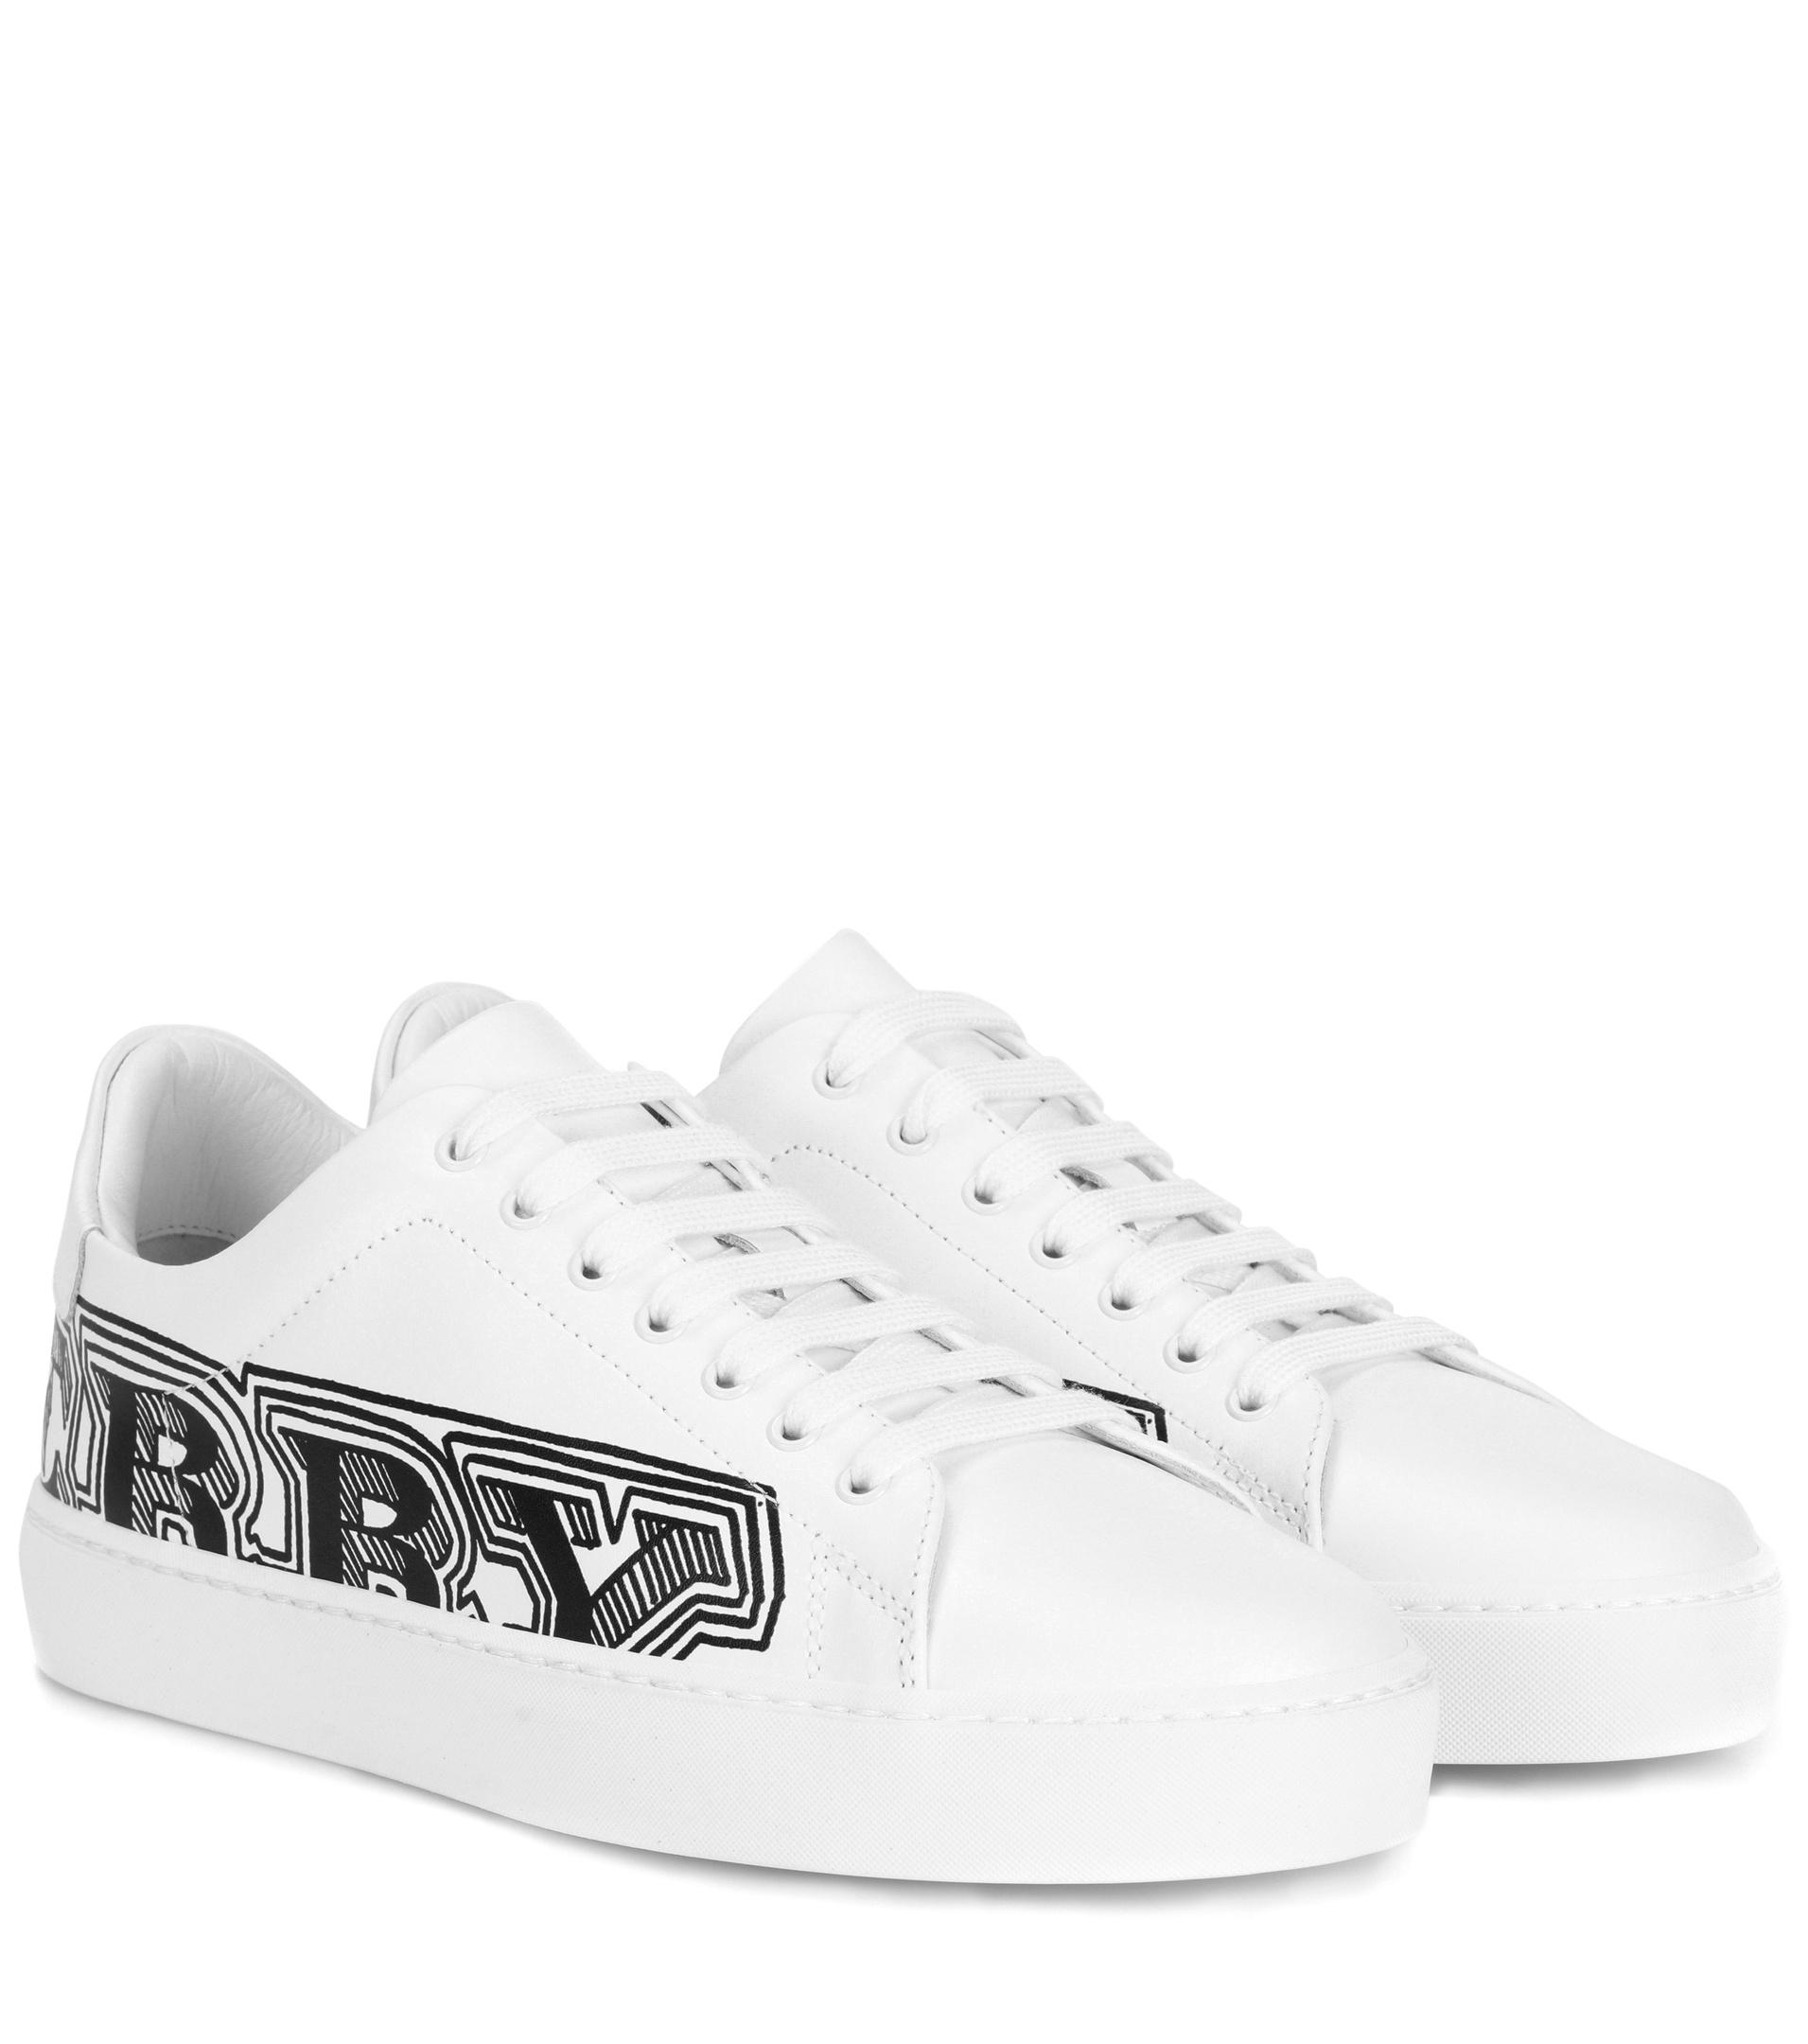 Printed leather sneakers Burberry PQ4T8H4j7